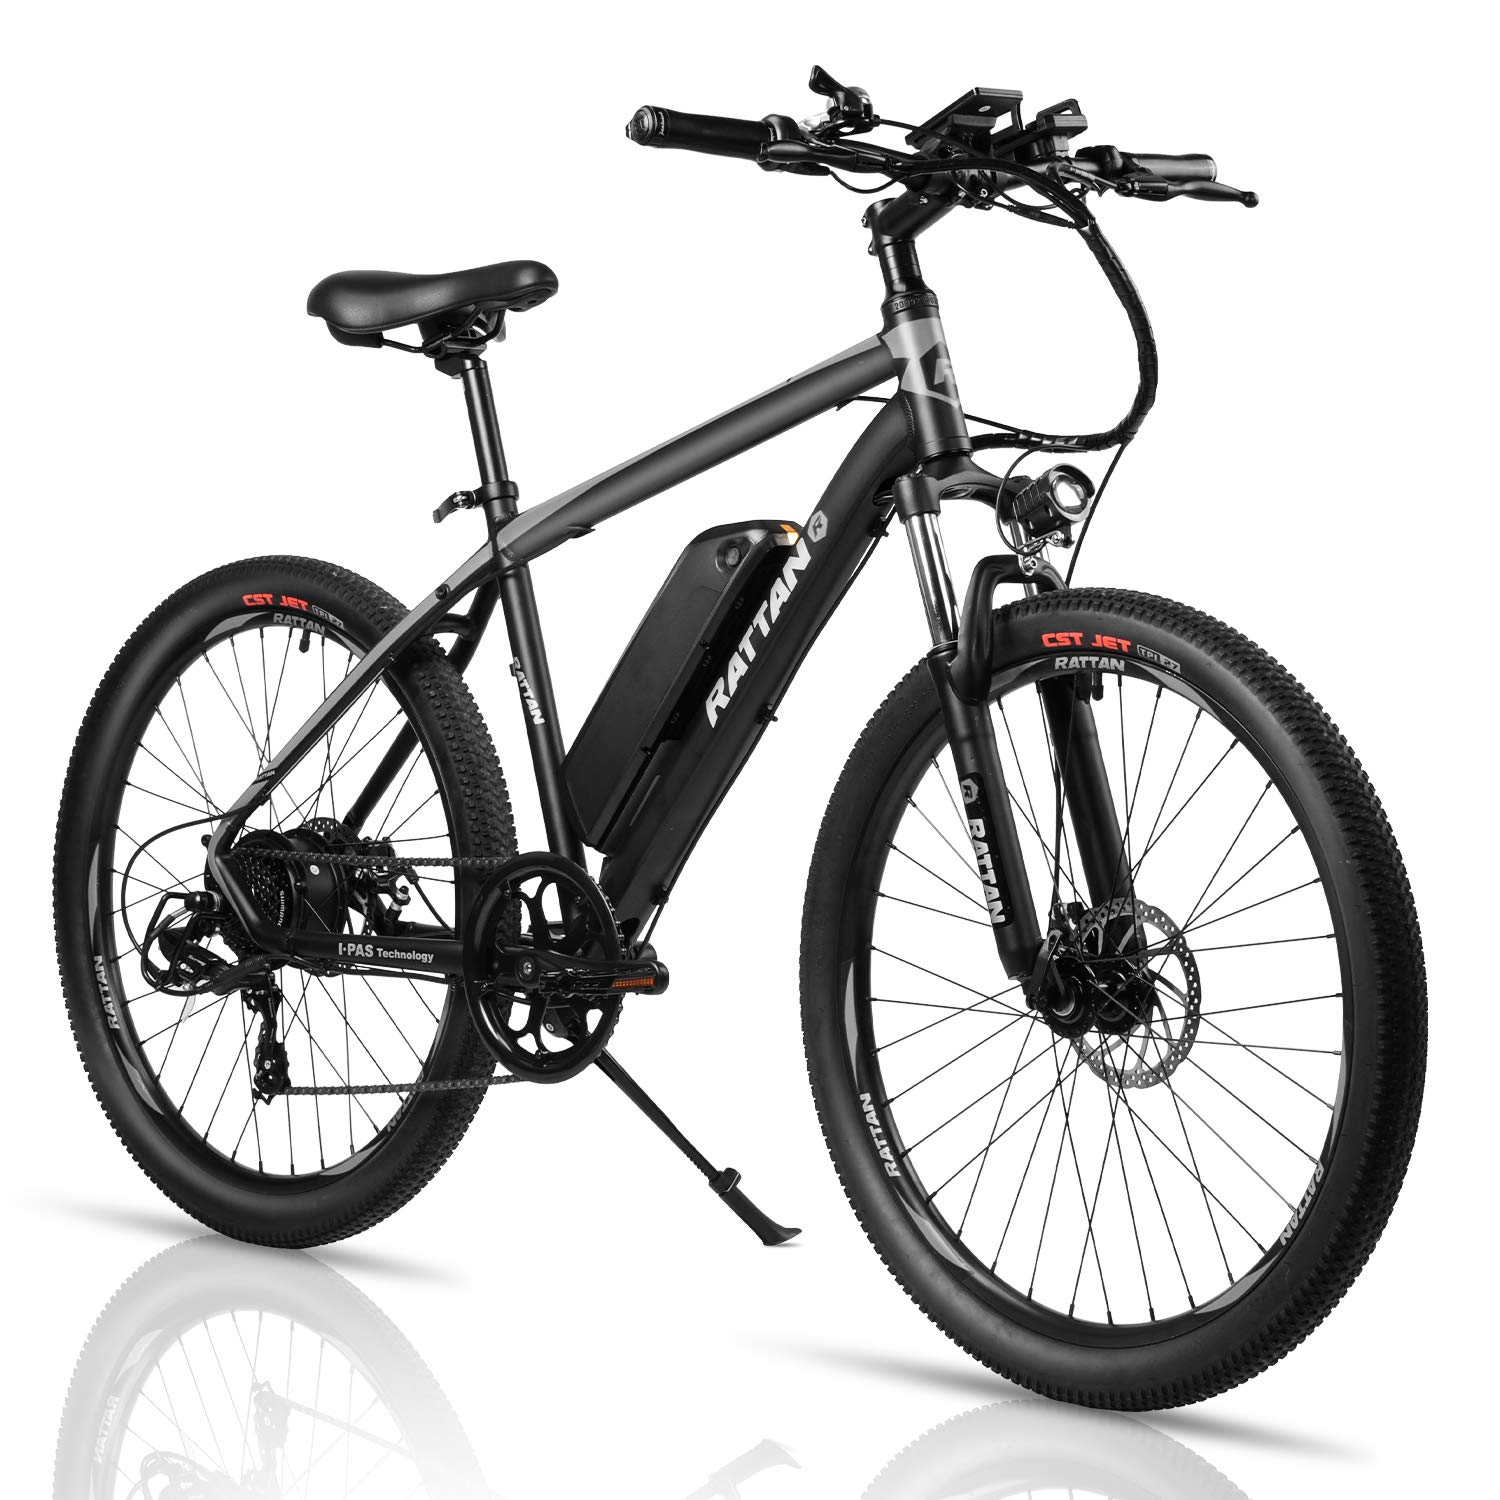 Rattan Challenger 2.0 26 Inch Mountain Electric Bicycle 36V 10.4AH Removable Lithium-ion Battery 350W Electric Bike for Adults Intelligent I-PAS Power Recharge System E-Bike 7 Speed Shifter